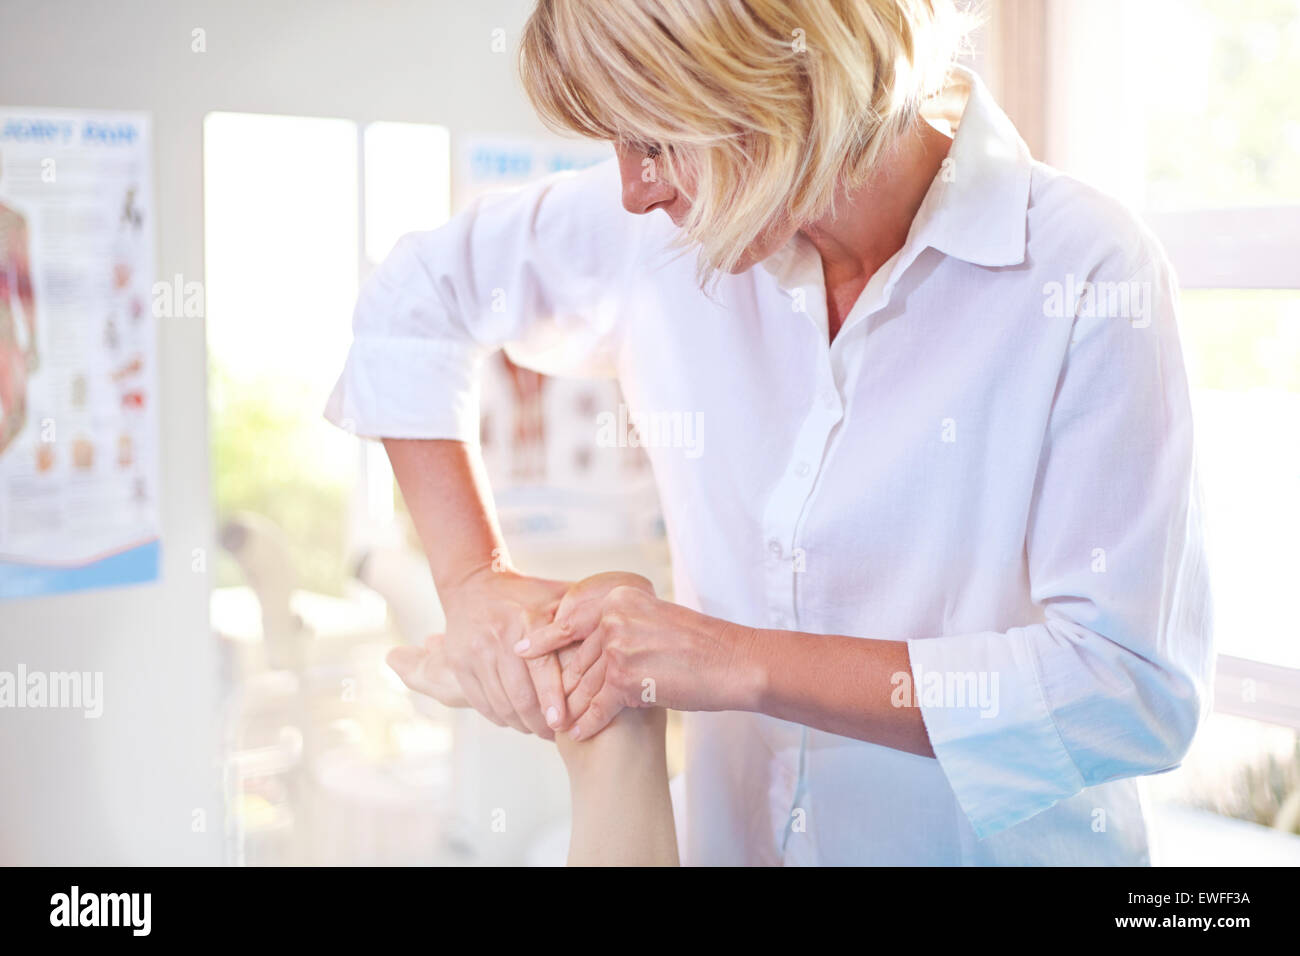 Physical therapist massaging patient's foot Stock Photo